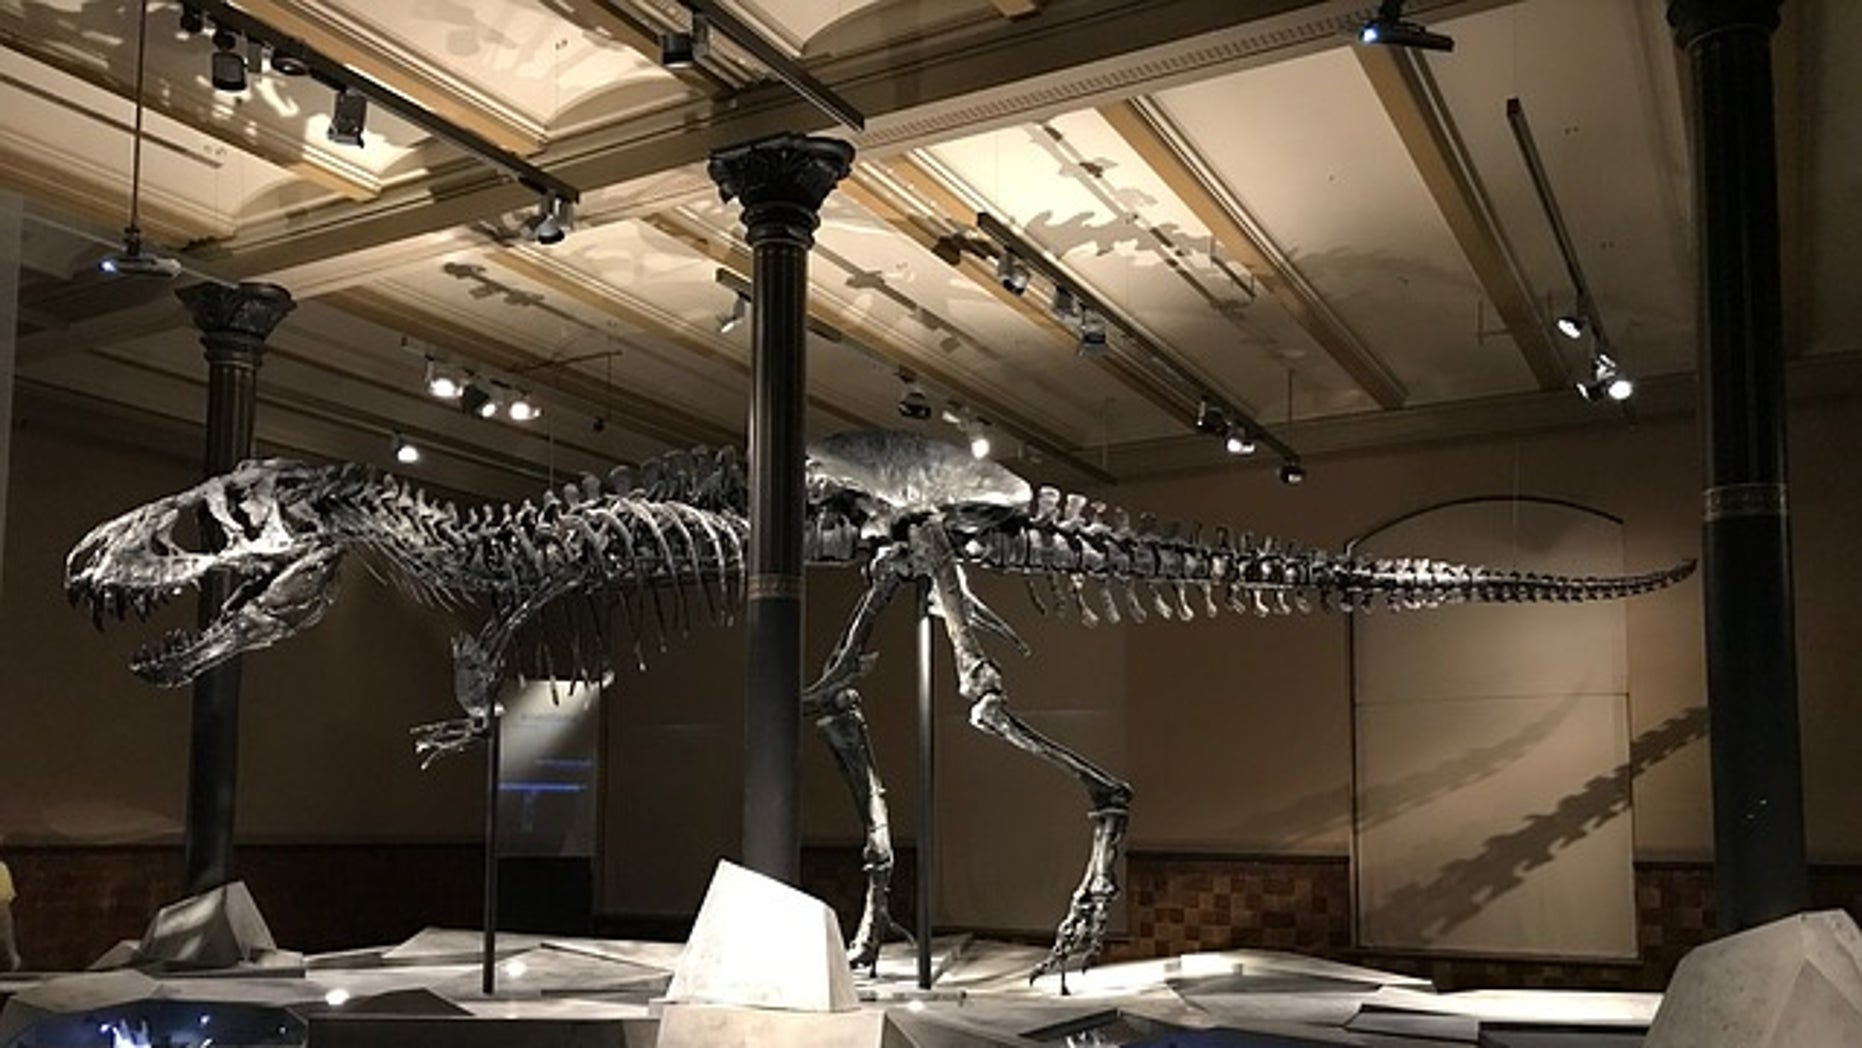 Fossil remains of a <em>Tyrannosaurus rex</em>, a dinosaur species that became extinct due to extreme climate conditions at the end of the Cretaceous period about 65.5 million years ago.